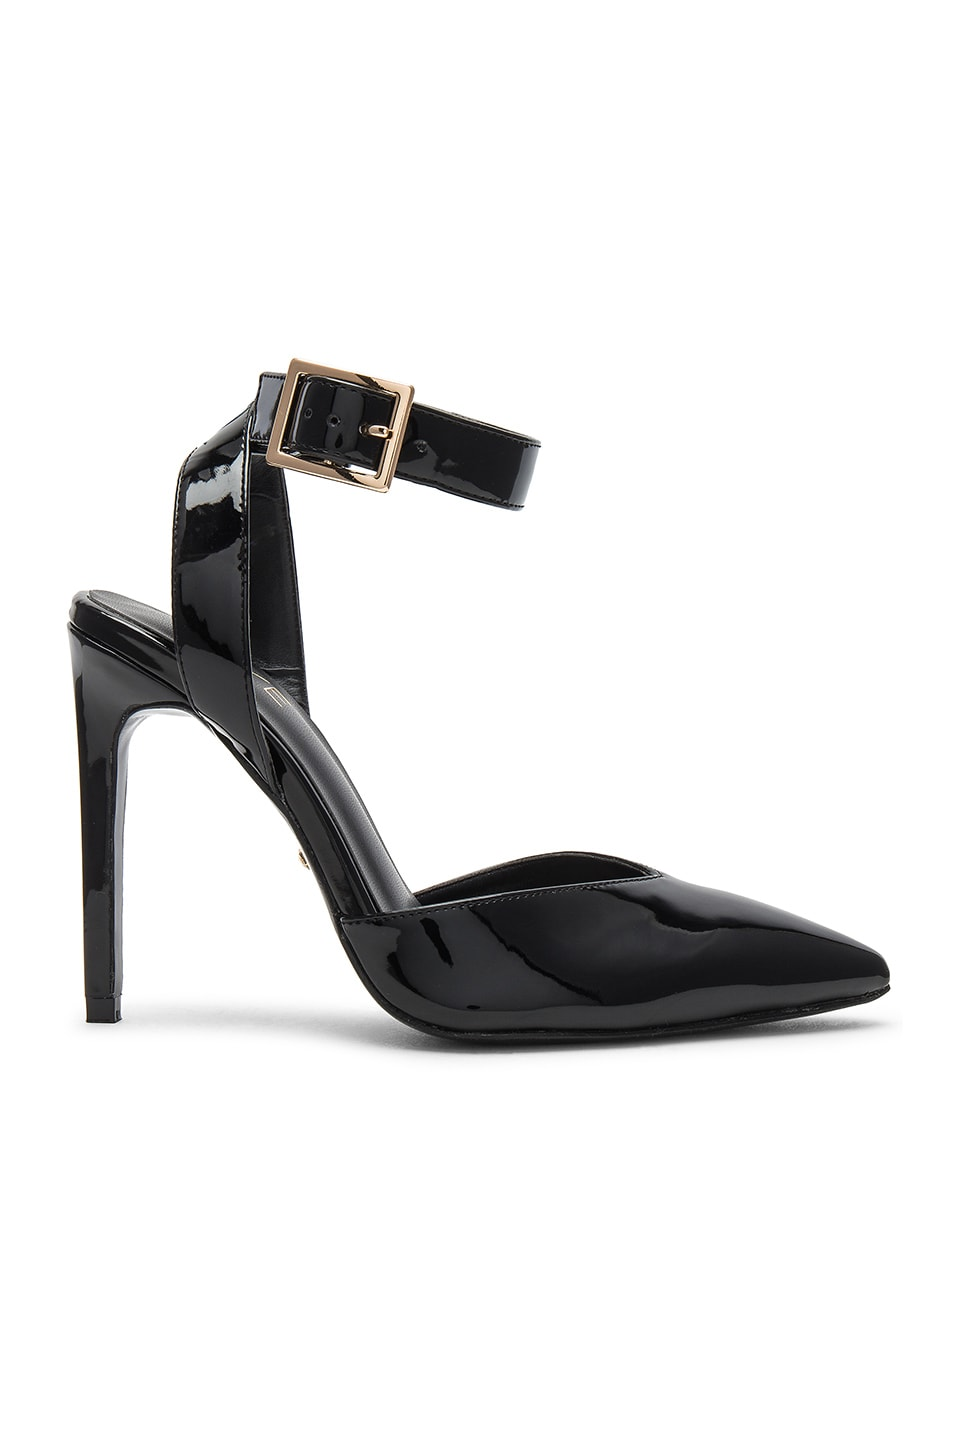 RAYE Blondie Heel in Black